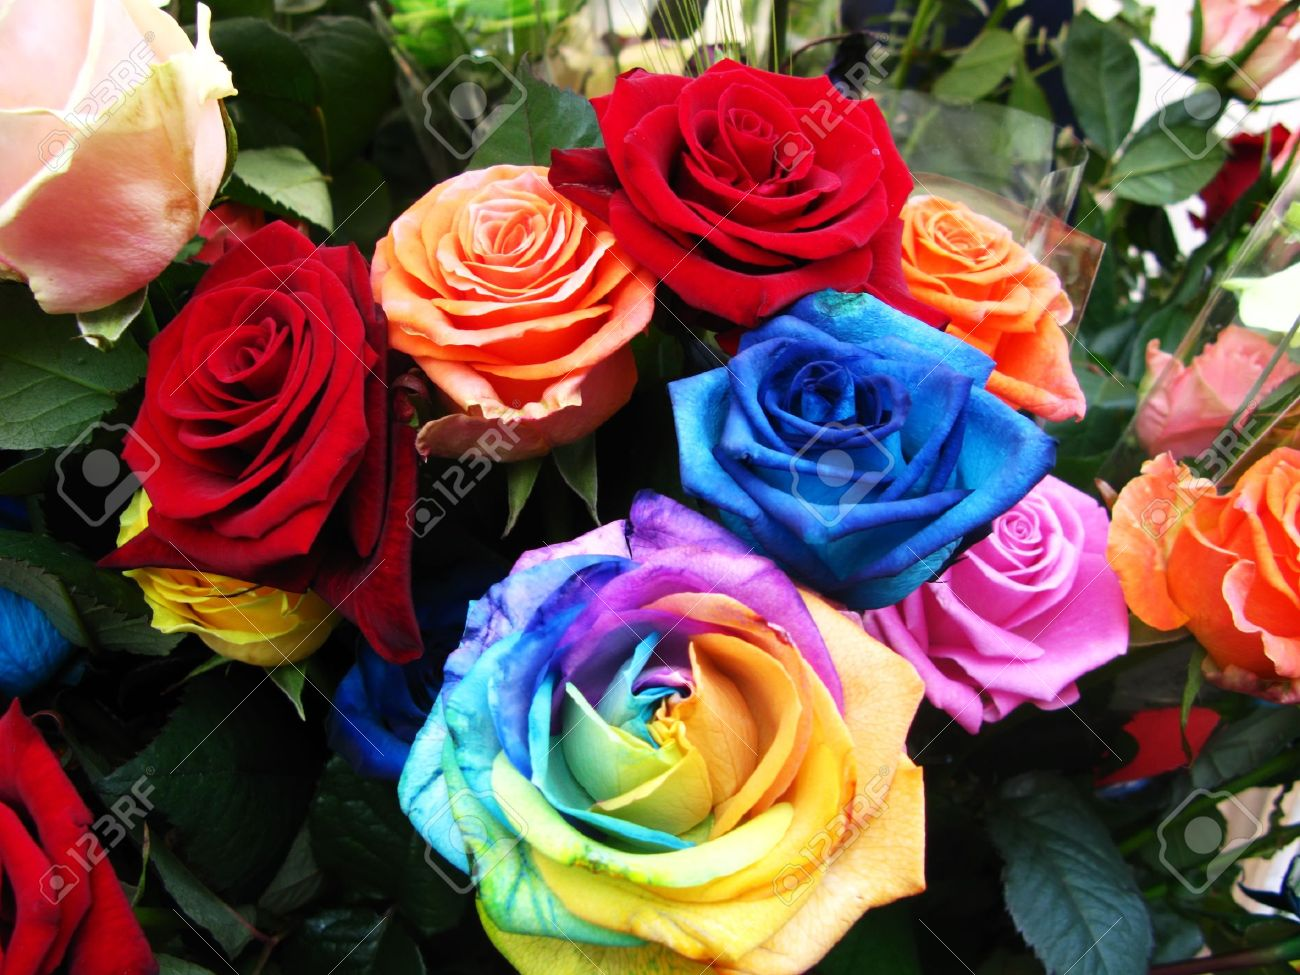 Variety Of Beautiful Roses Red Pink Blue And Rainbow Stock Photo Picture And Royalty Free Image Image 10317359